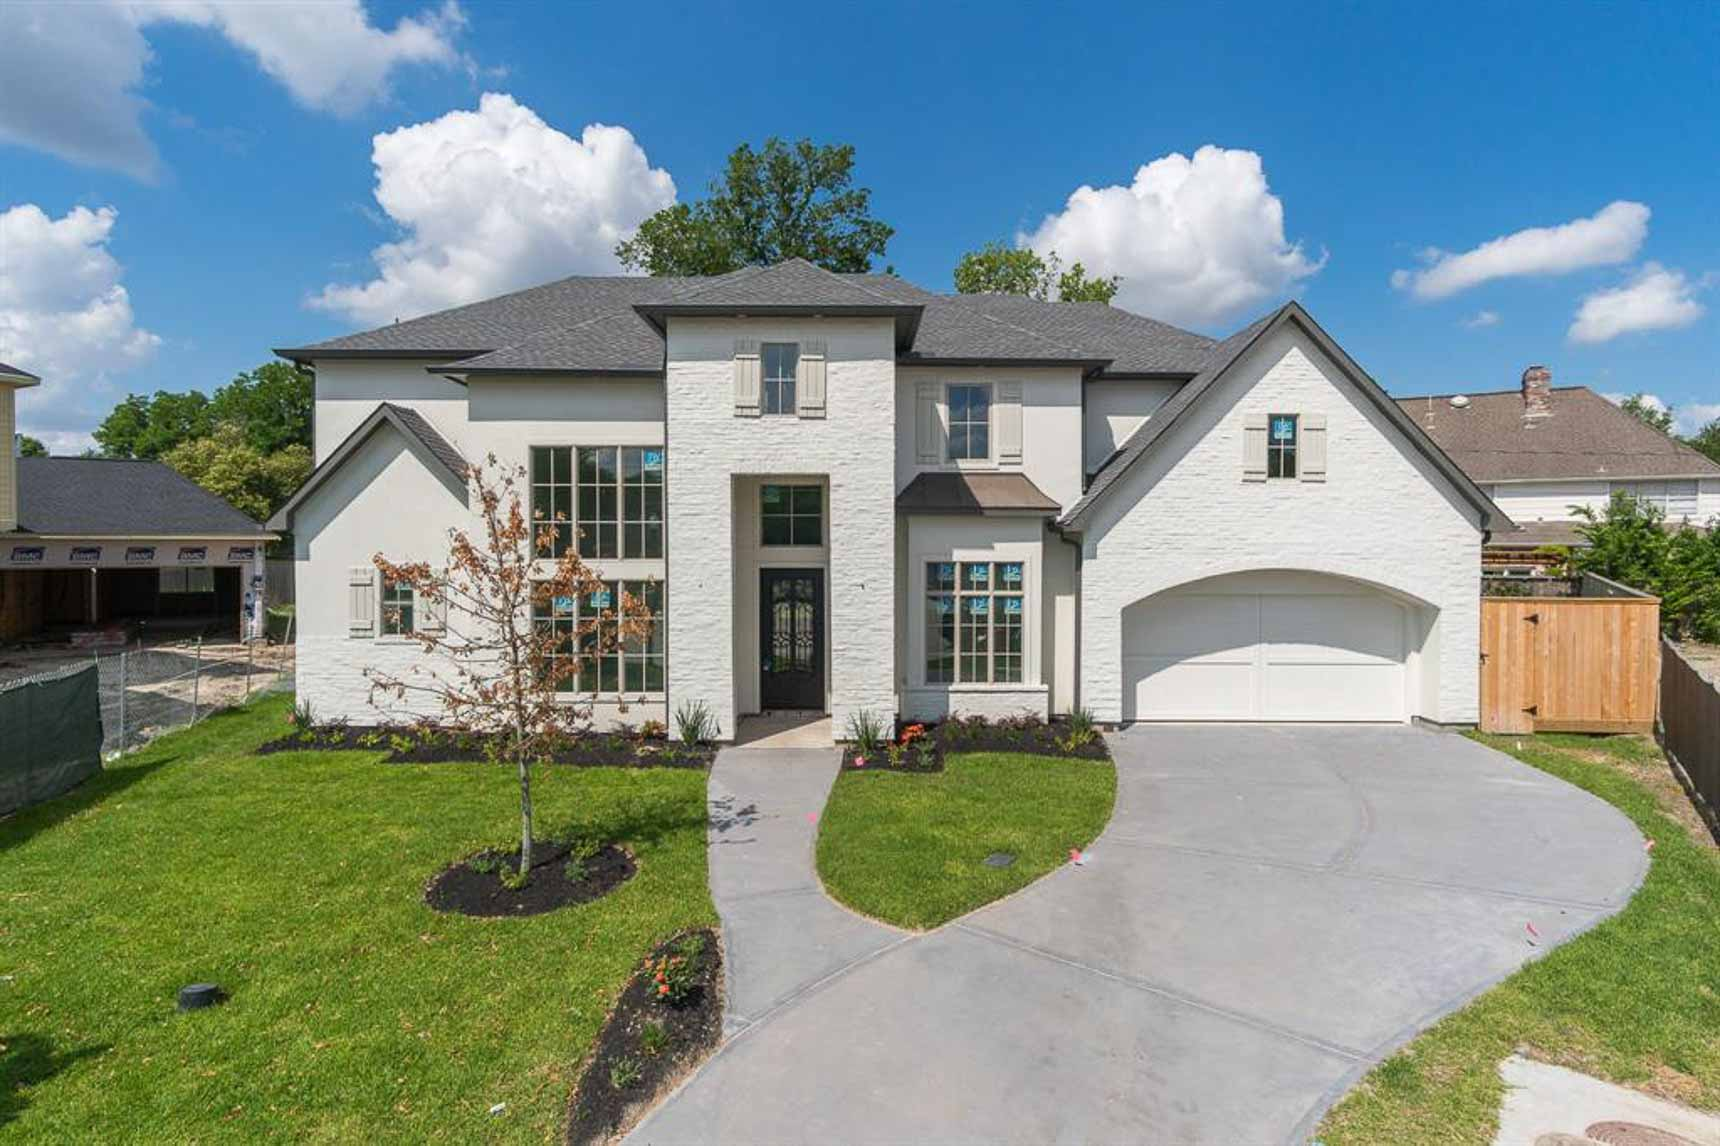 White painted brick home on a nearly 14,000 square foot lot.